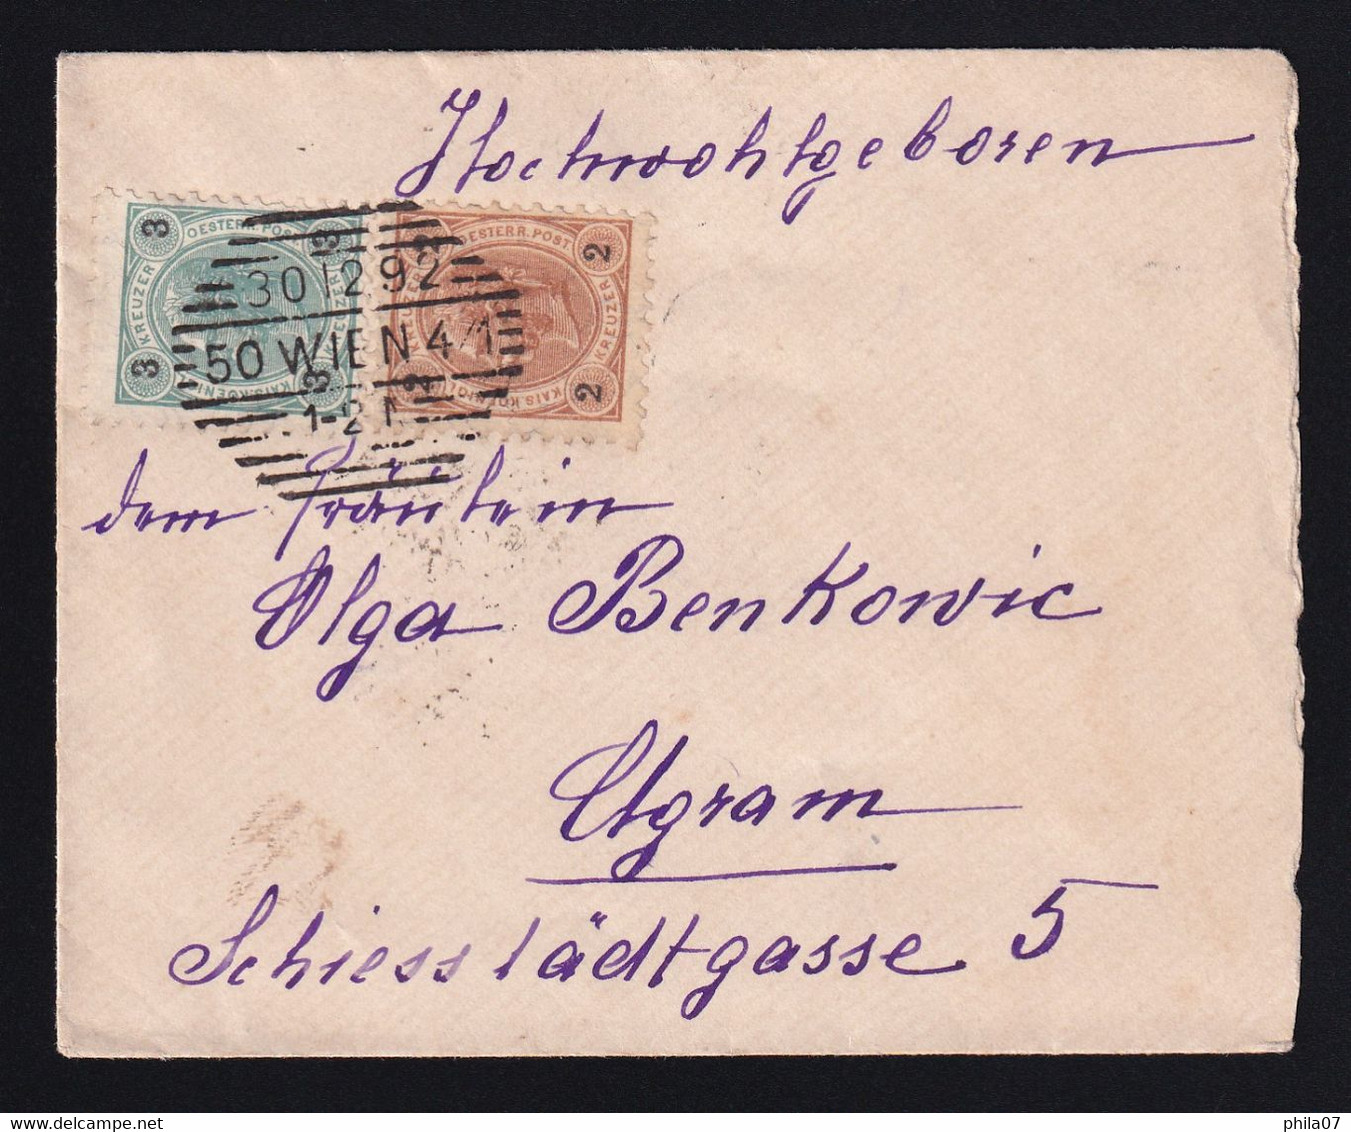 Austria - Small Size Letter Sent From Wien To Zagreb 30.12. 1892. Two Colored Franking, Good Quality. - Sin Clasificación